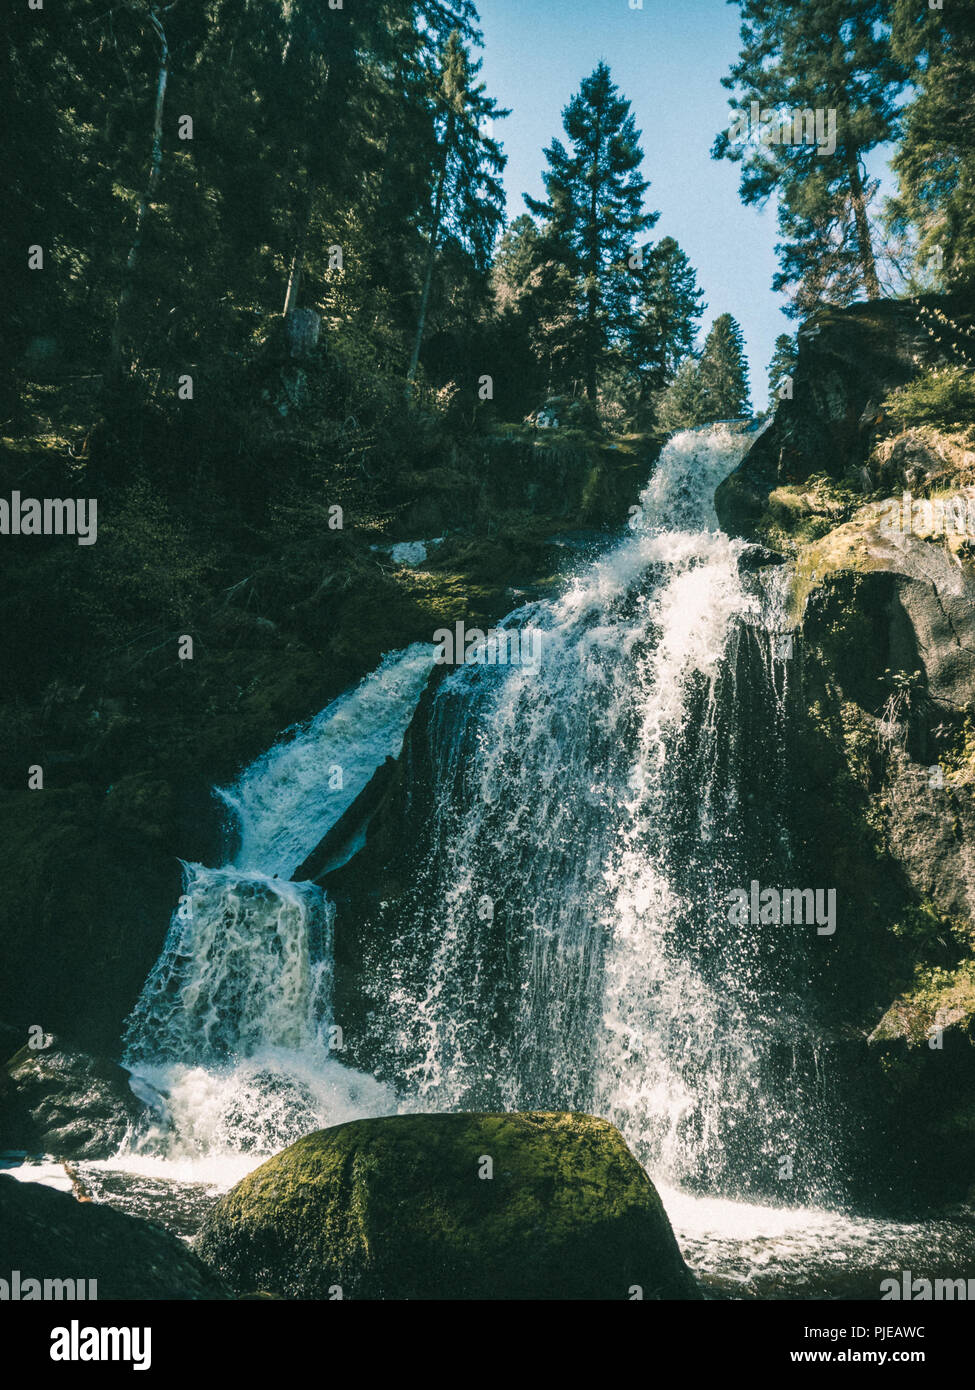 Triberg Waterfall in the Black Forest, Germany - Stock Image